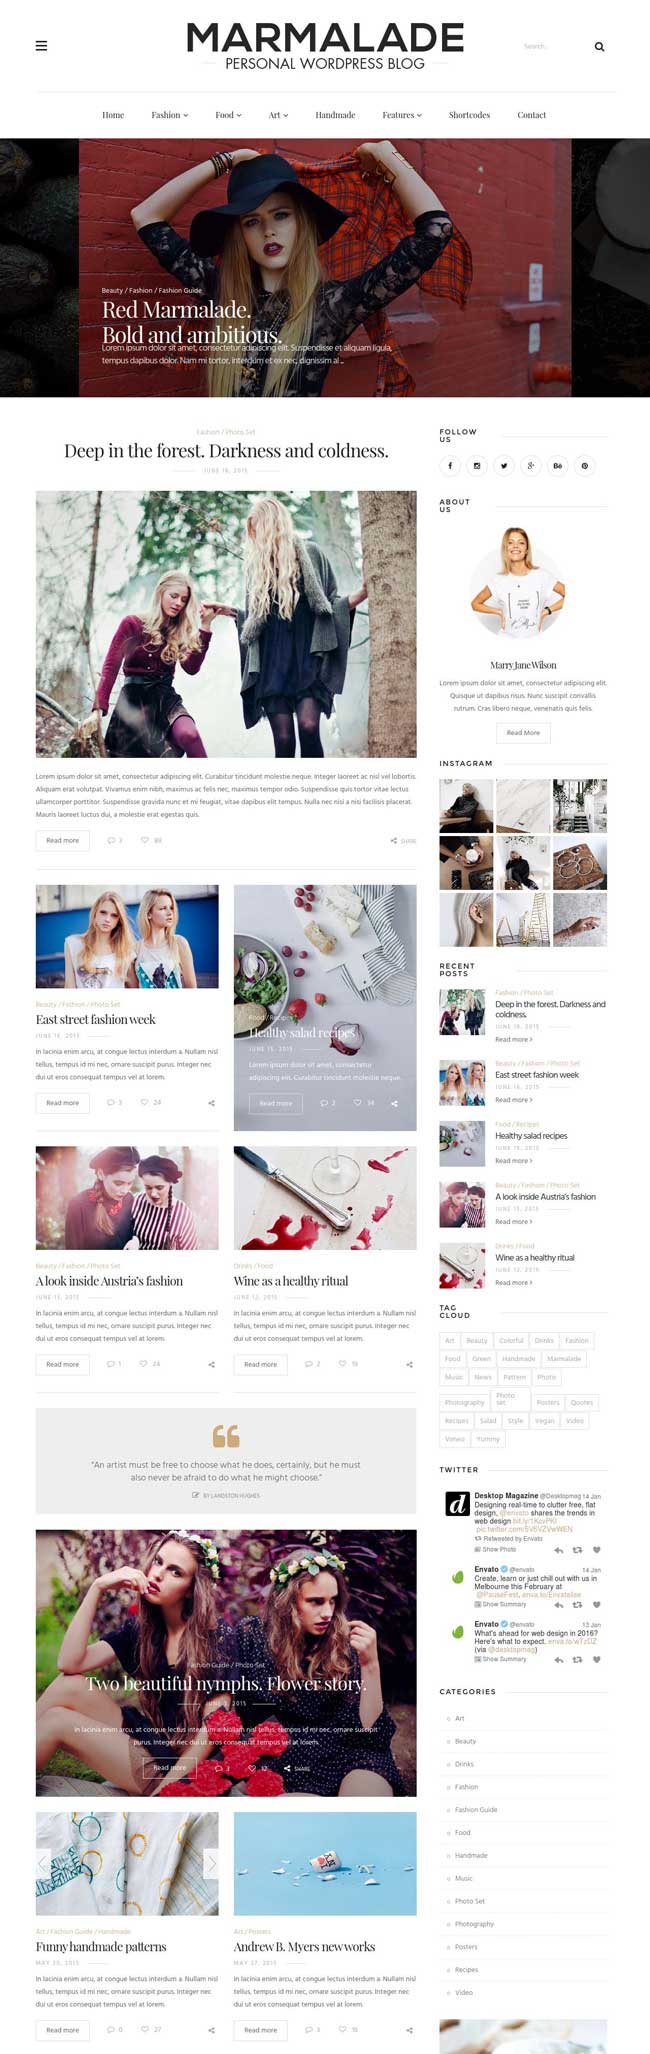 Marmalade-Personal-Travel-WordPress-Blog-Theme